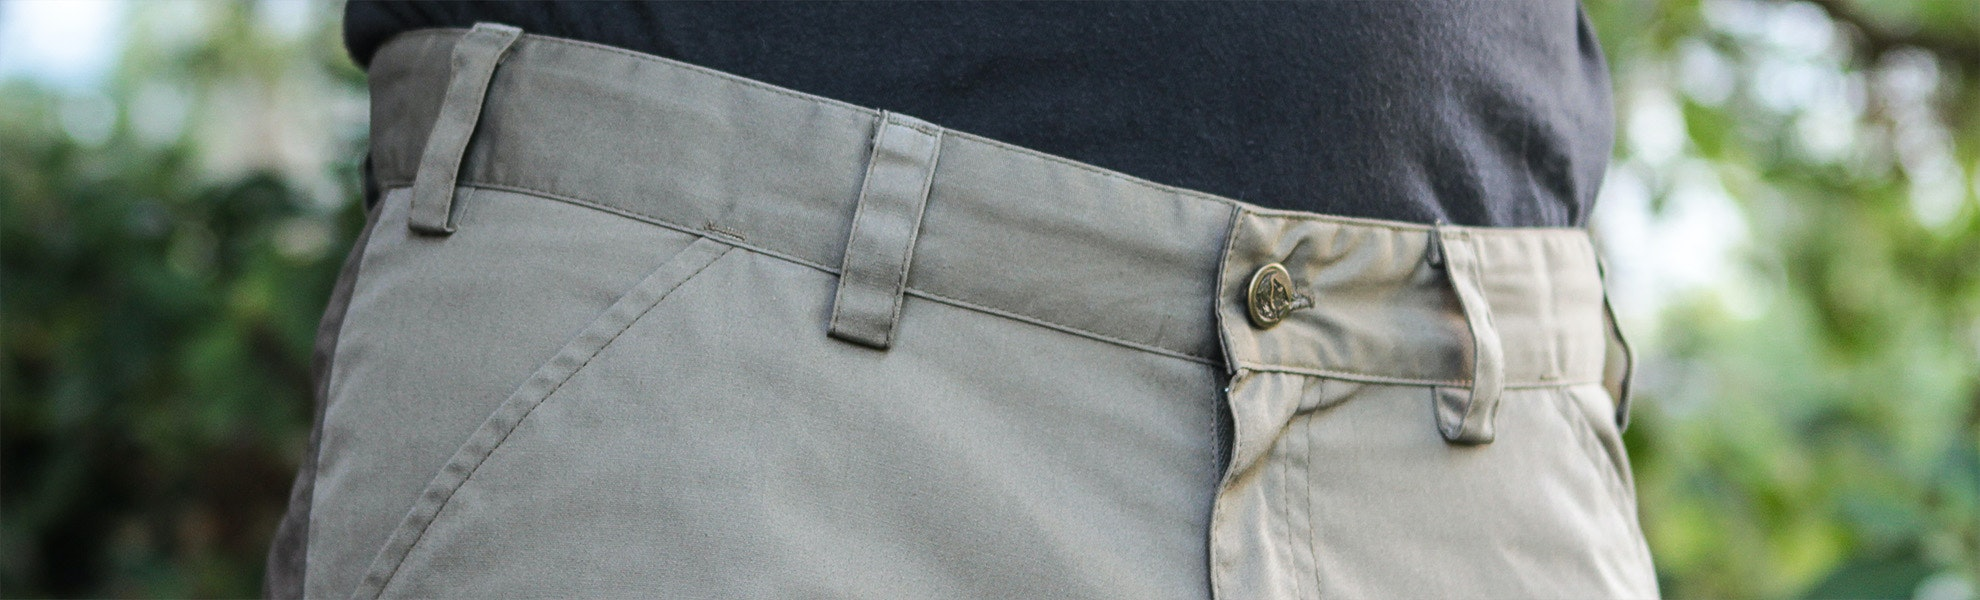 Fjällräven Men's Barents Pro Trousers